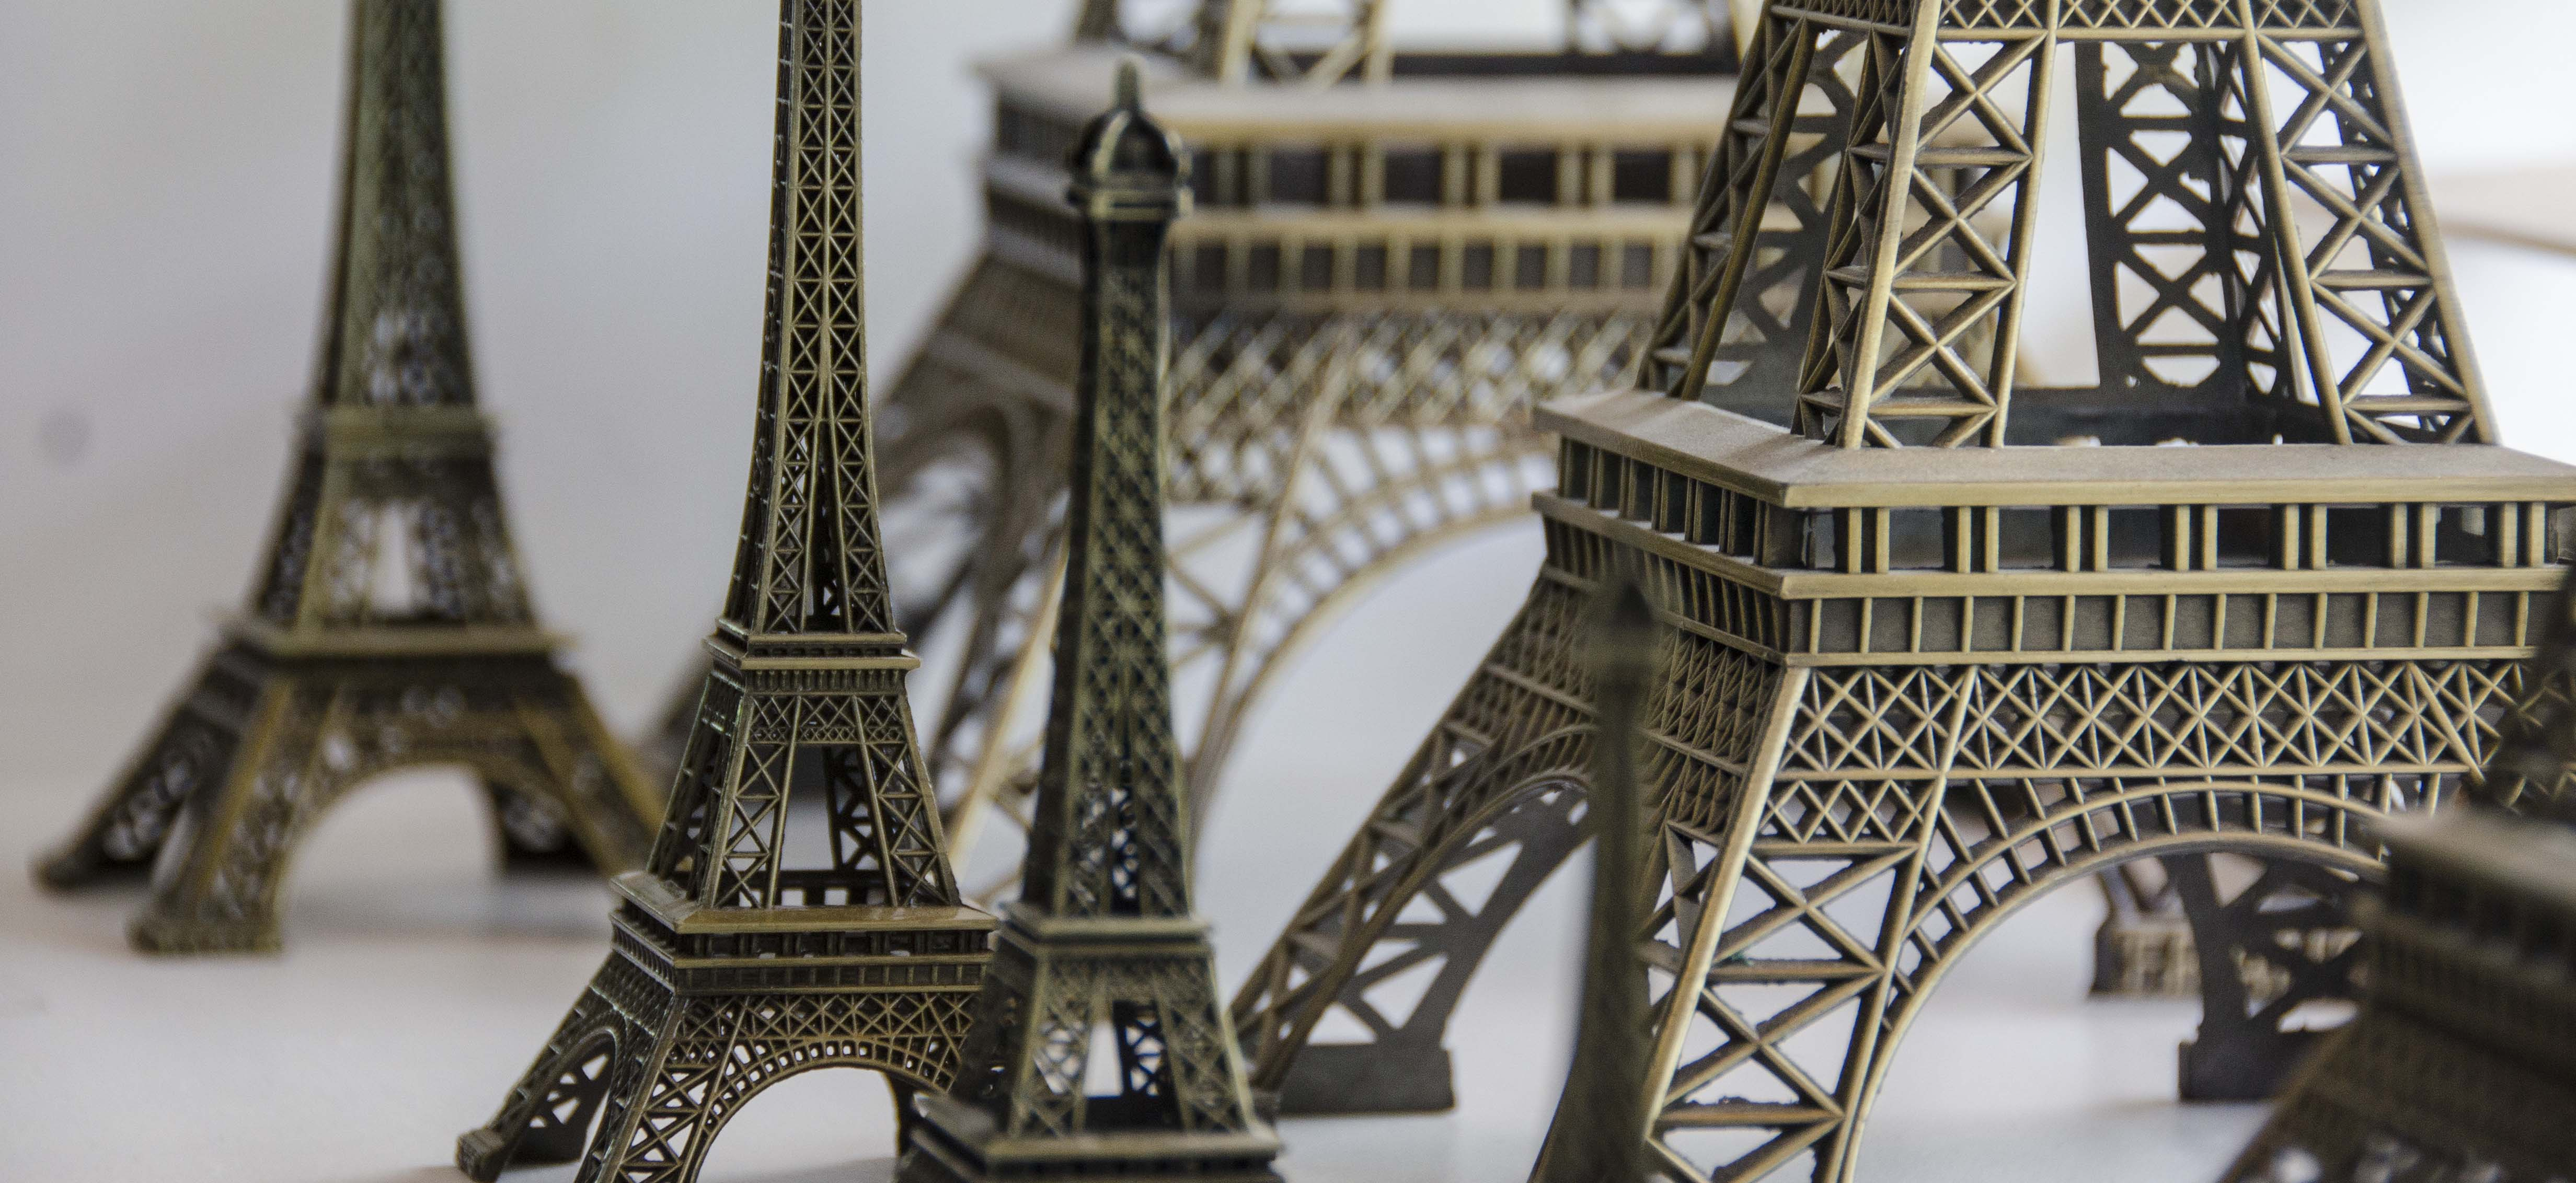 Several different sized Eiffel tower statues in the Snagged Office